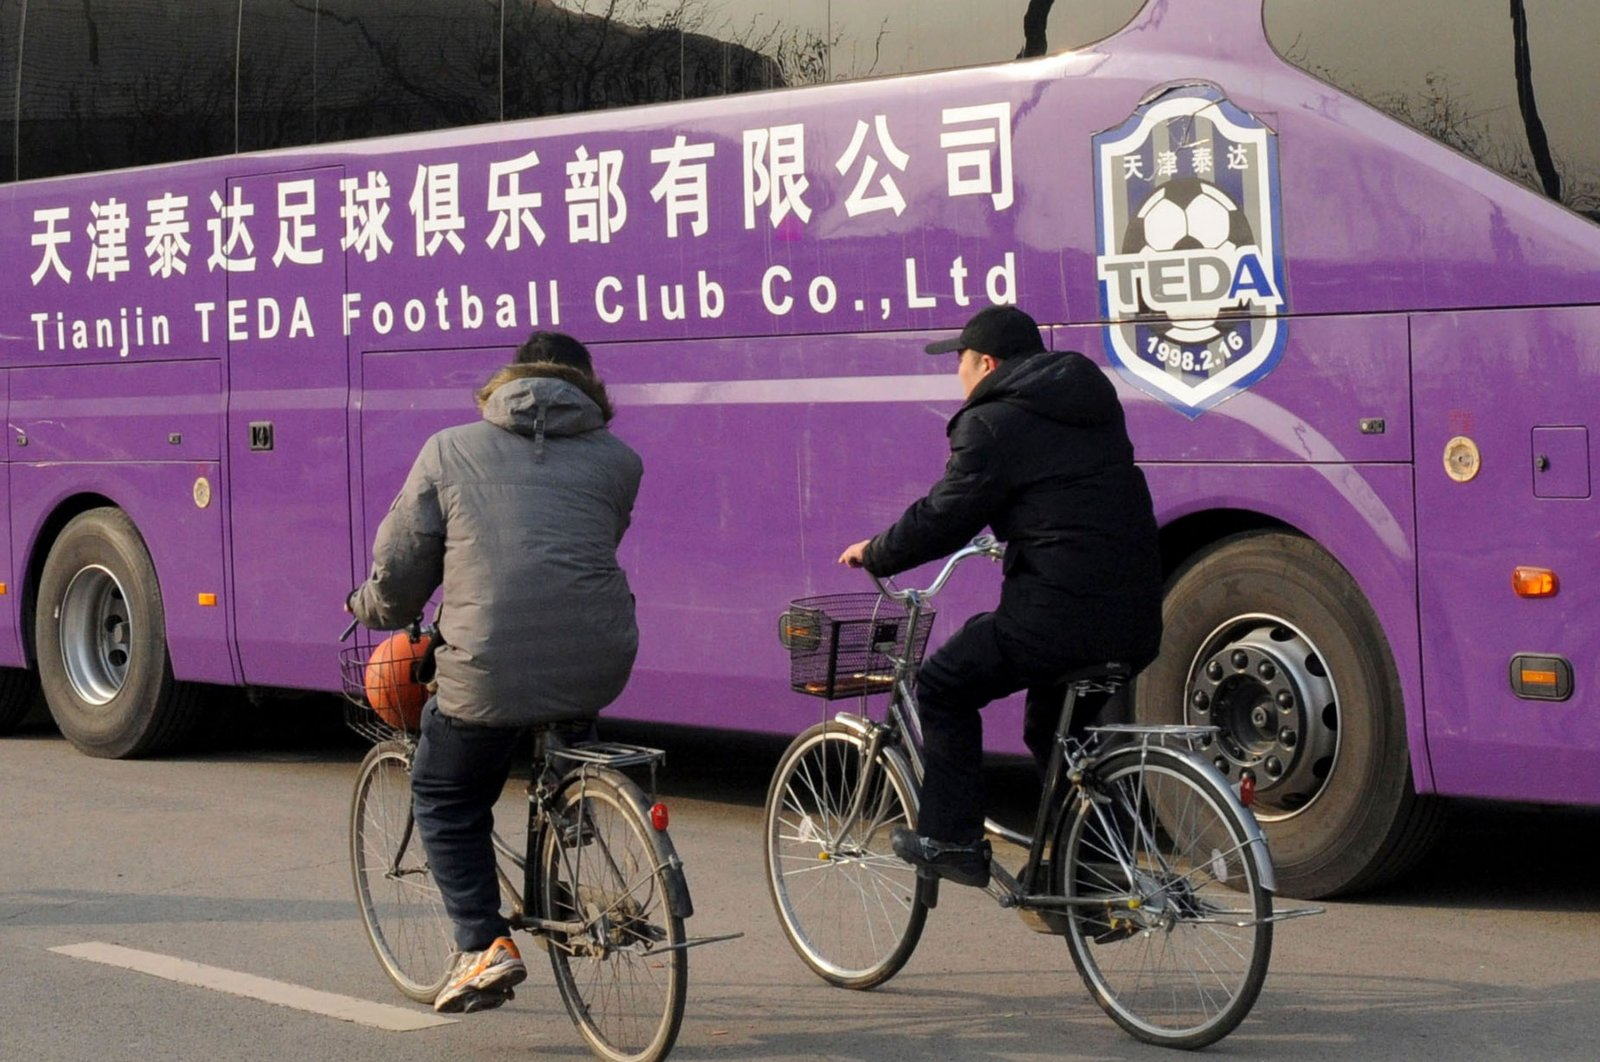 Two men ride past a Tianjin TEDA football club bus on a road in Tianjin, China, Feb. 19, 2013. (AFP Photo)